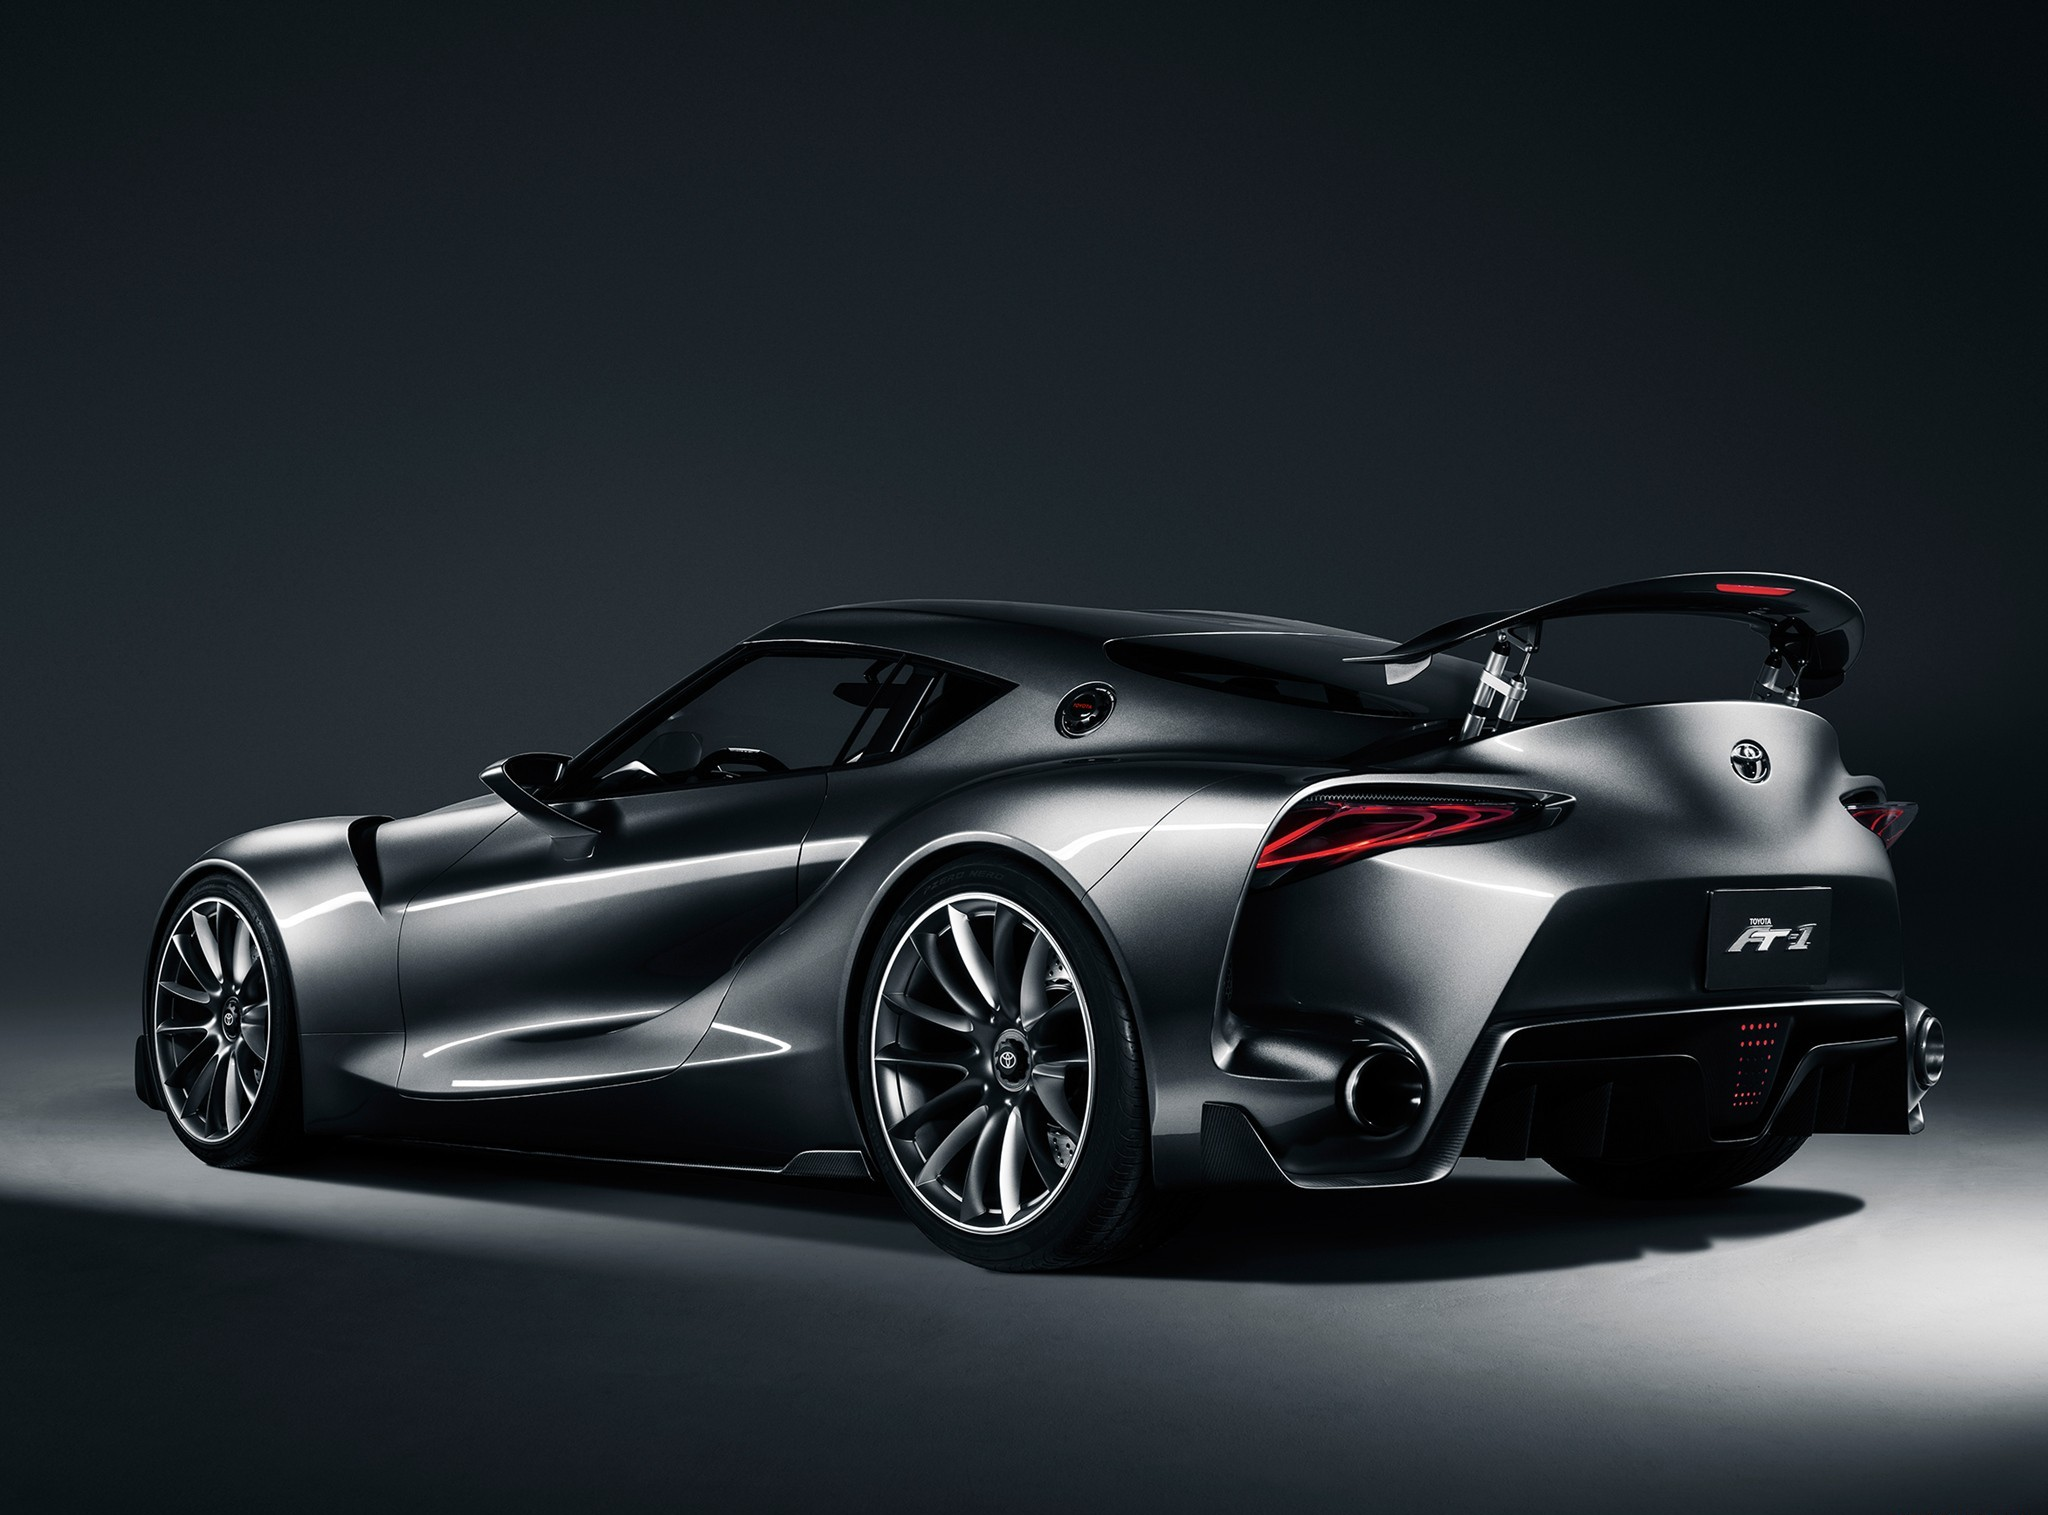 Toyota Ft 1 Concept Full Hd Fondo De Pantalla And Fondo De